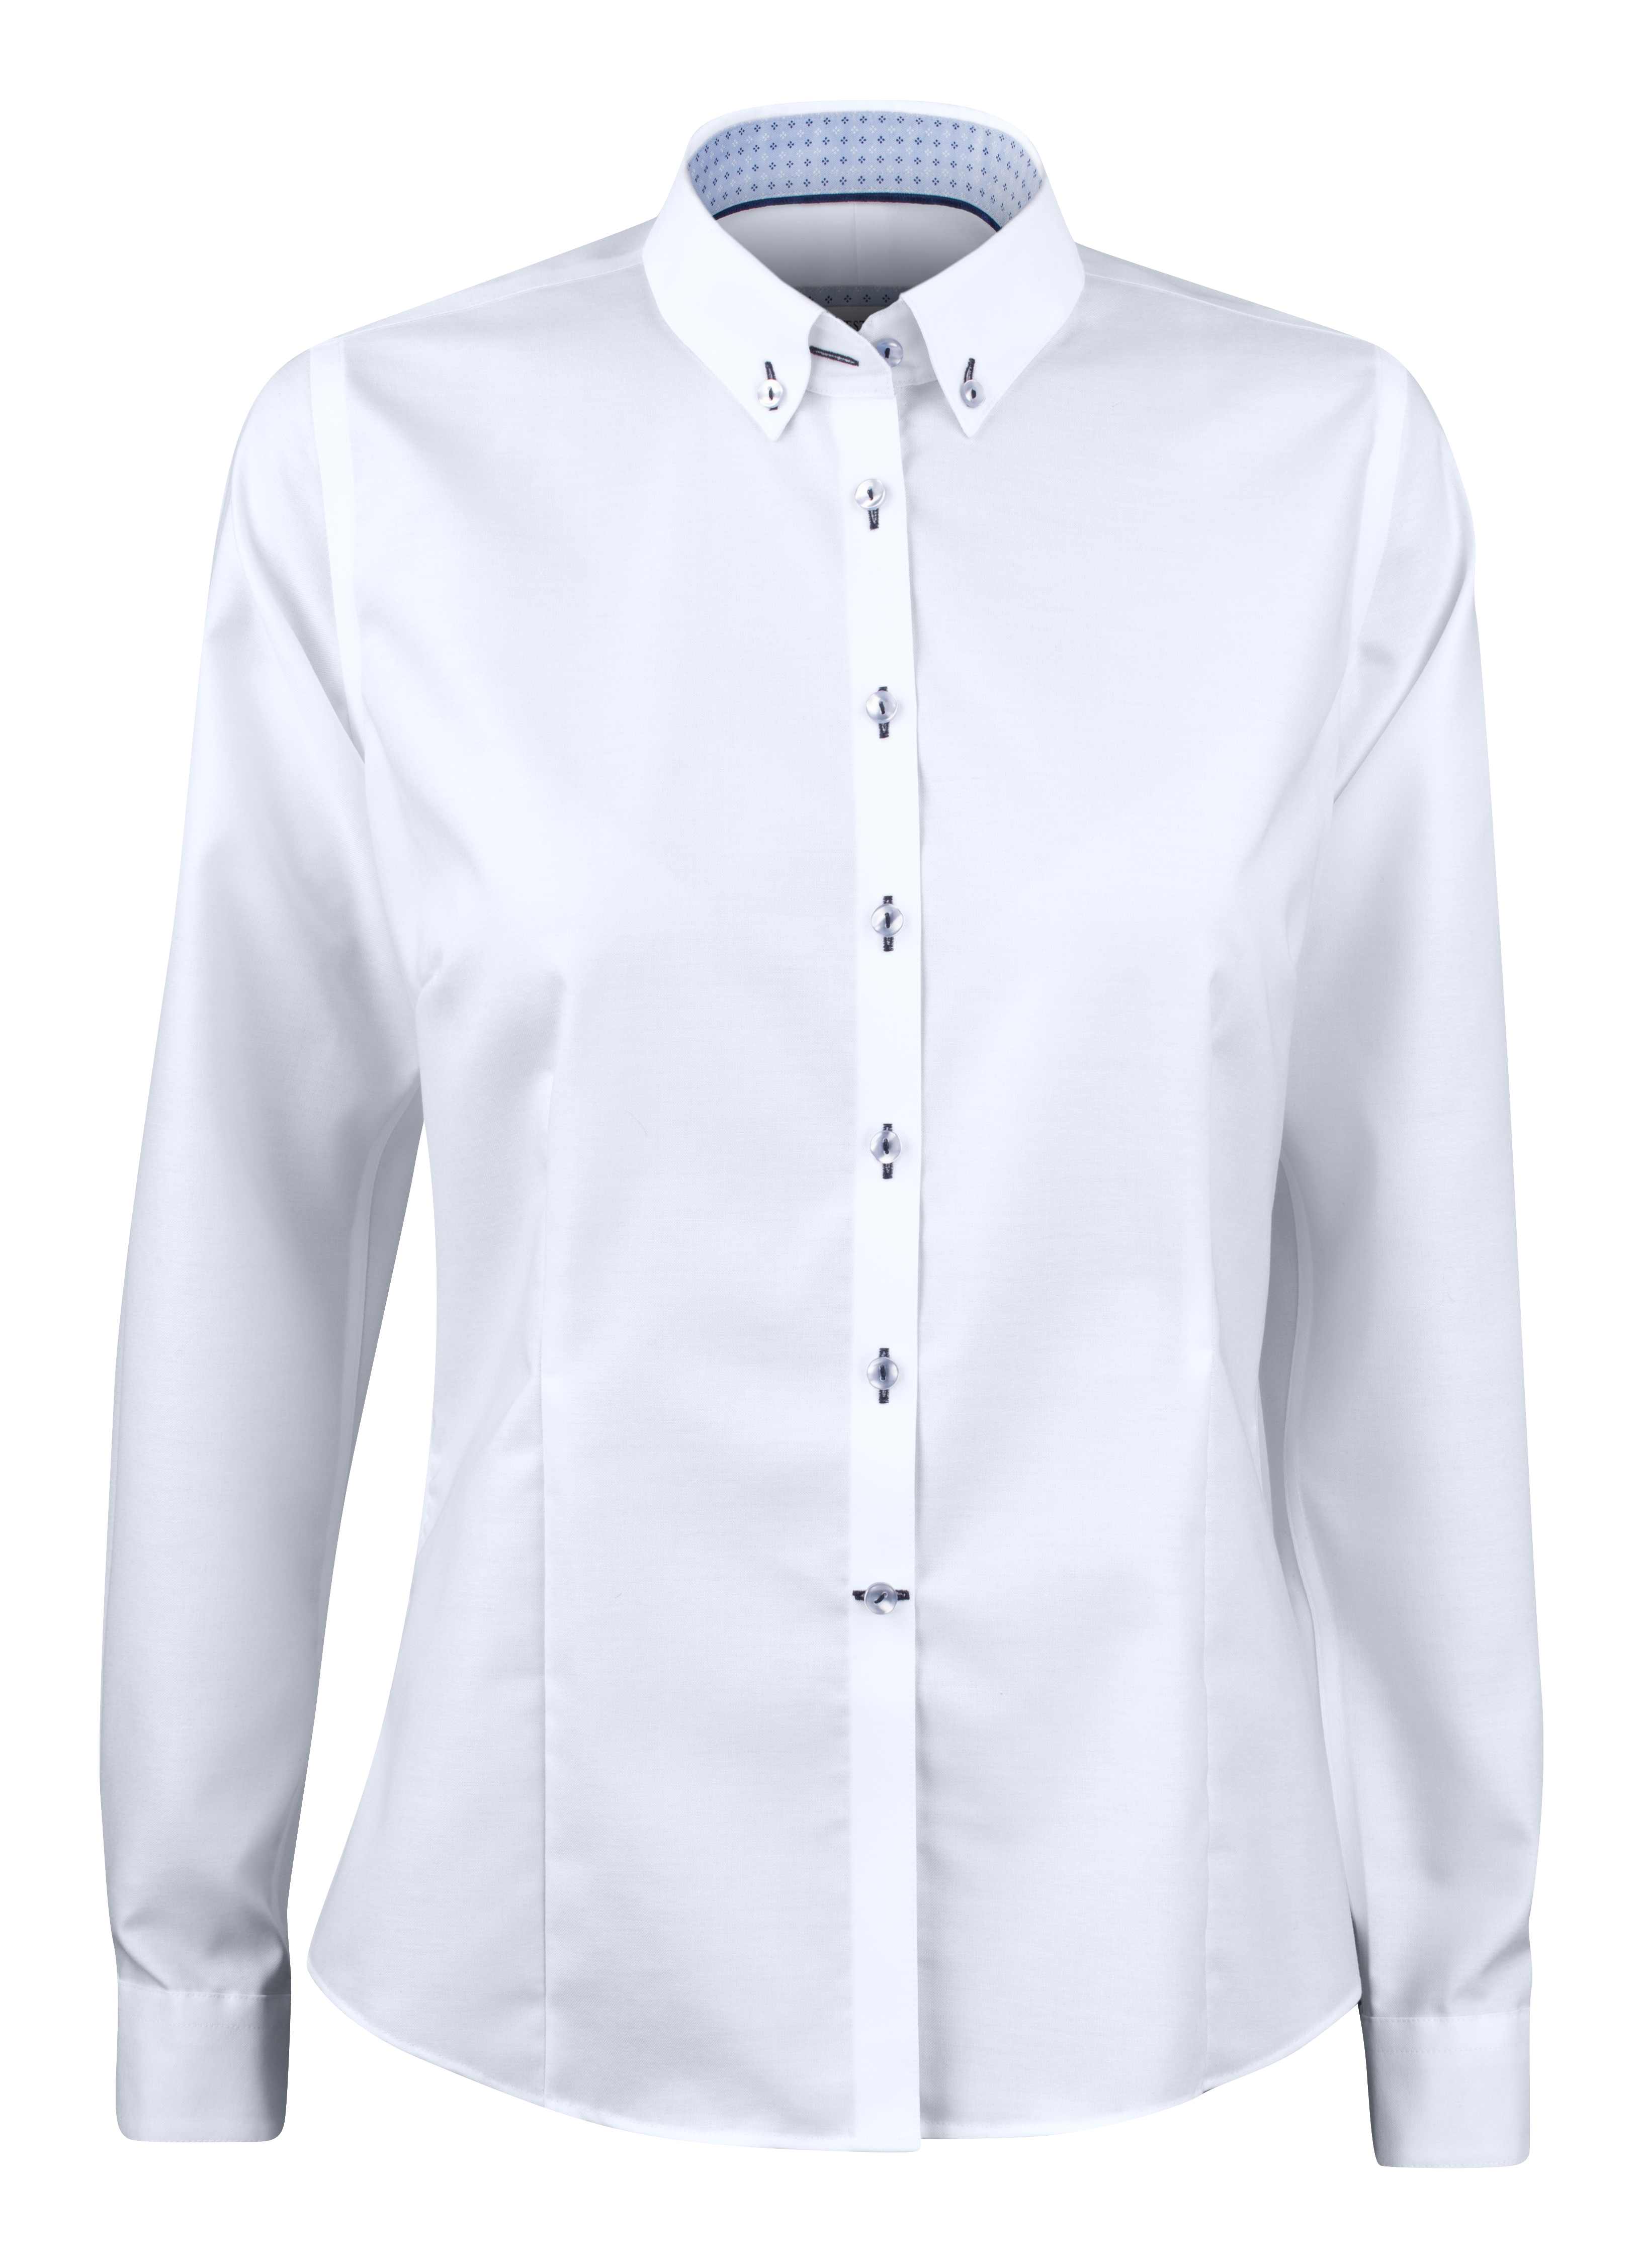 J. HARVEST & FROST RED BOW 121 WOMAN SHIRT - vrouwen